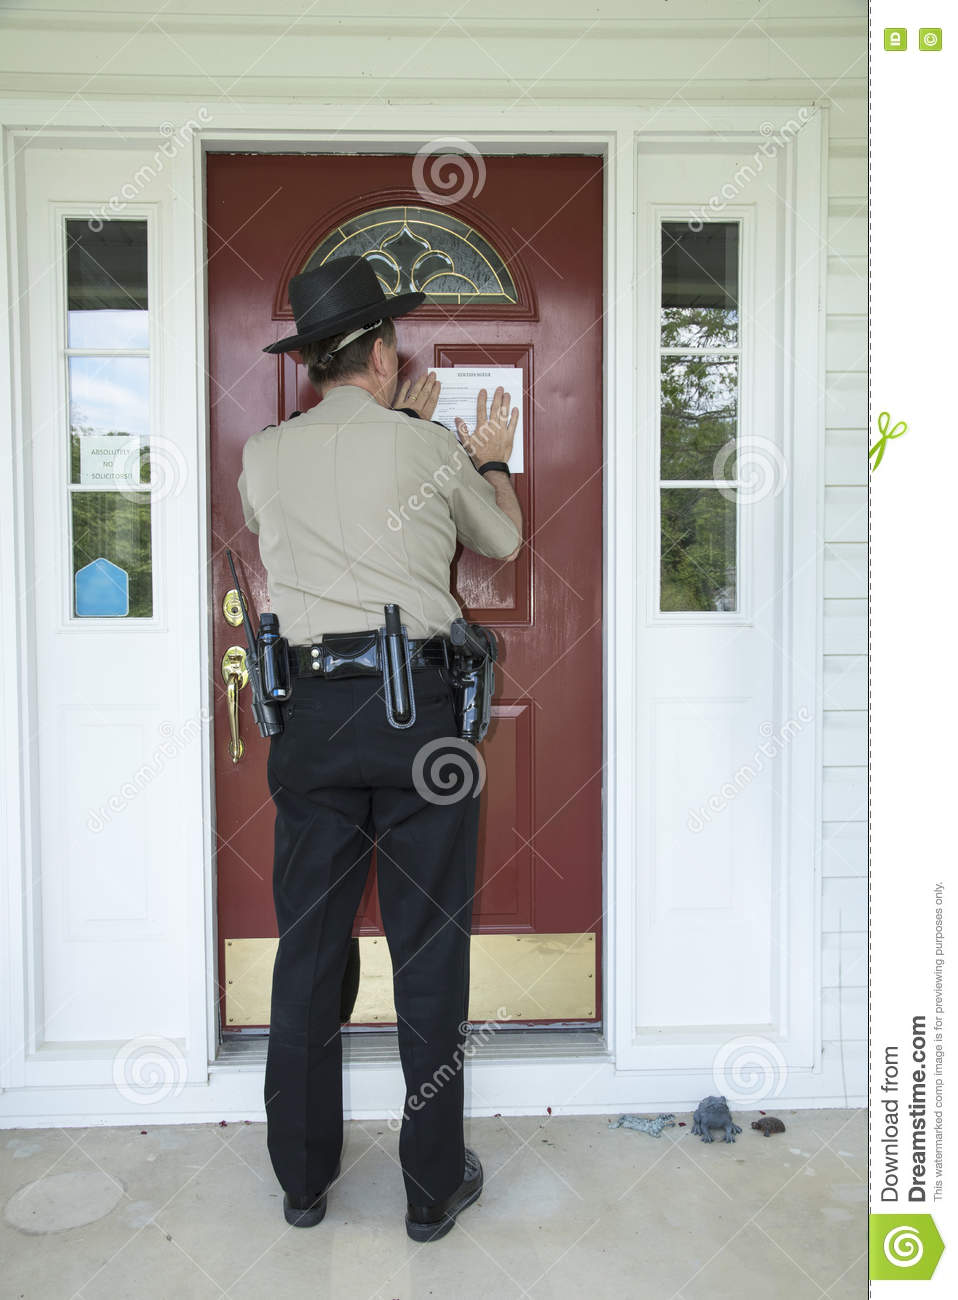 law enforcement officer posting an eviction notice stock photo